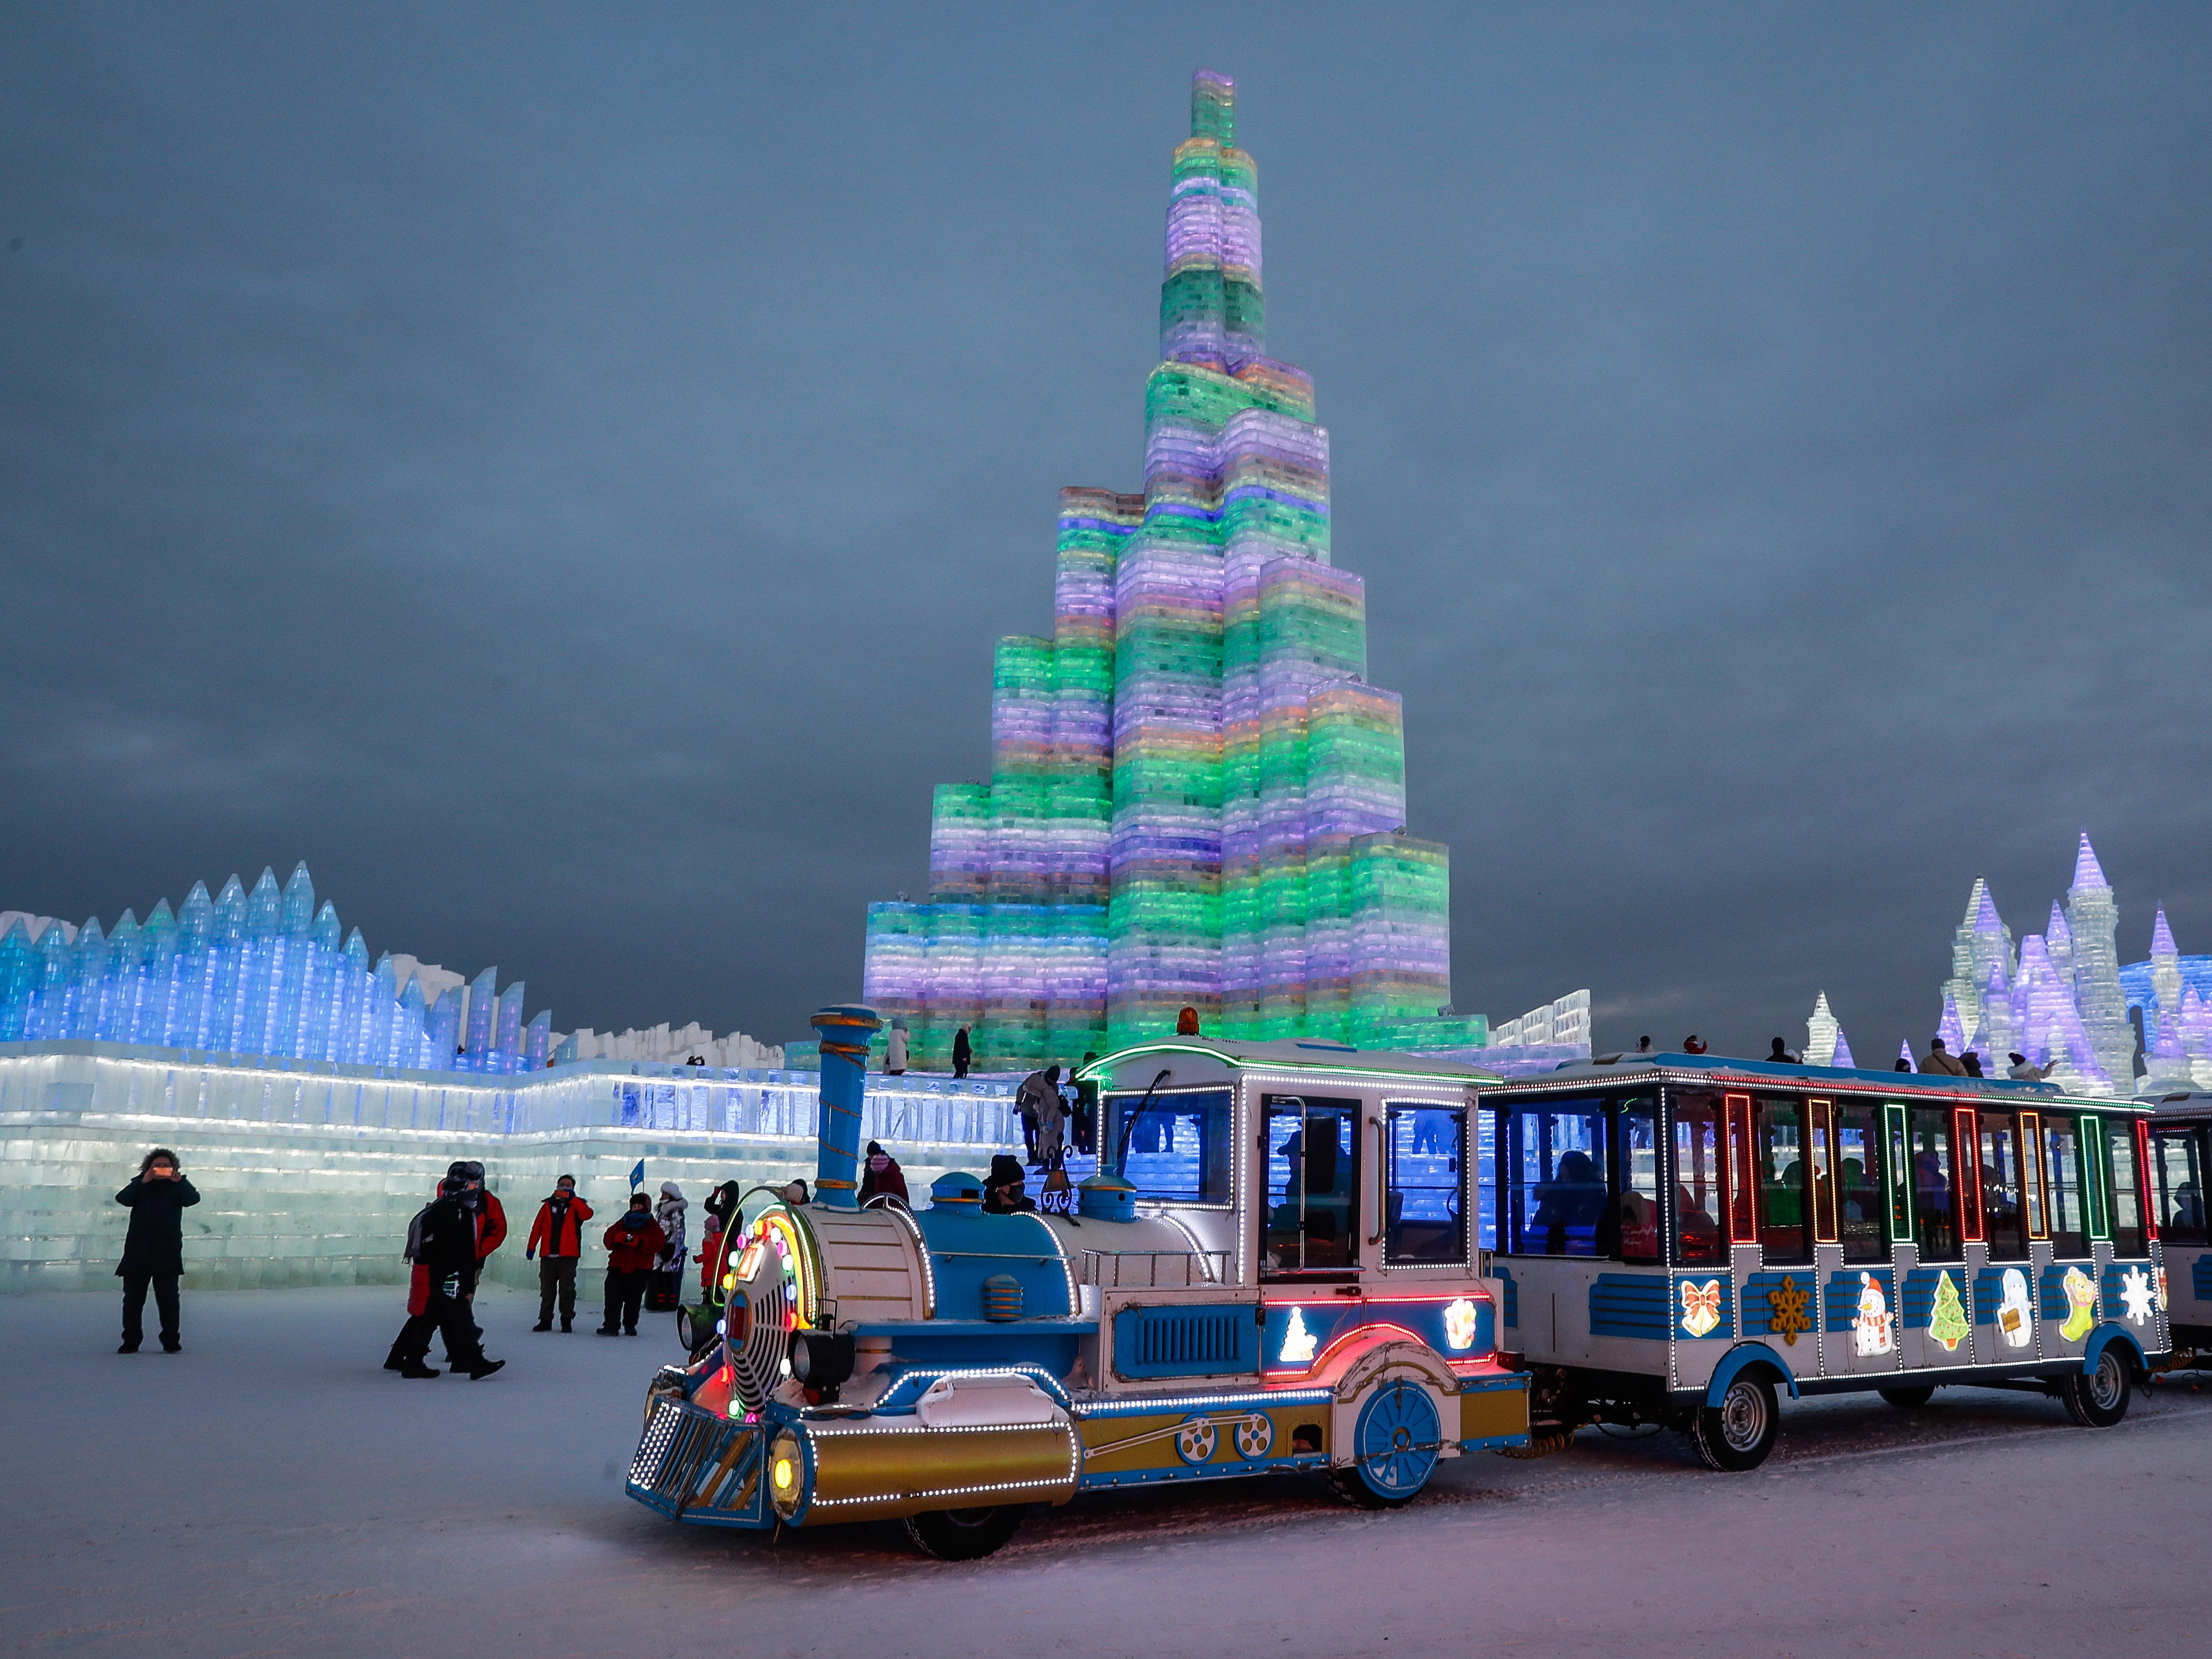 People visit ice sculptures illuminated by colored lights.